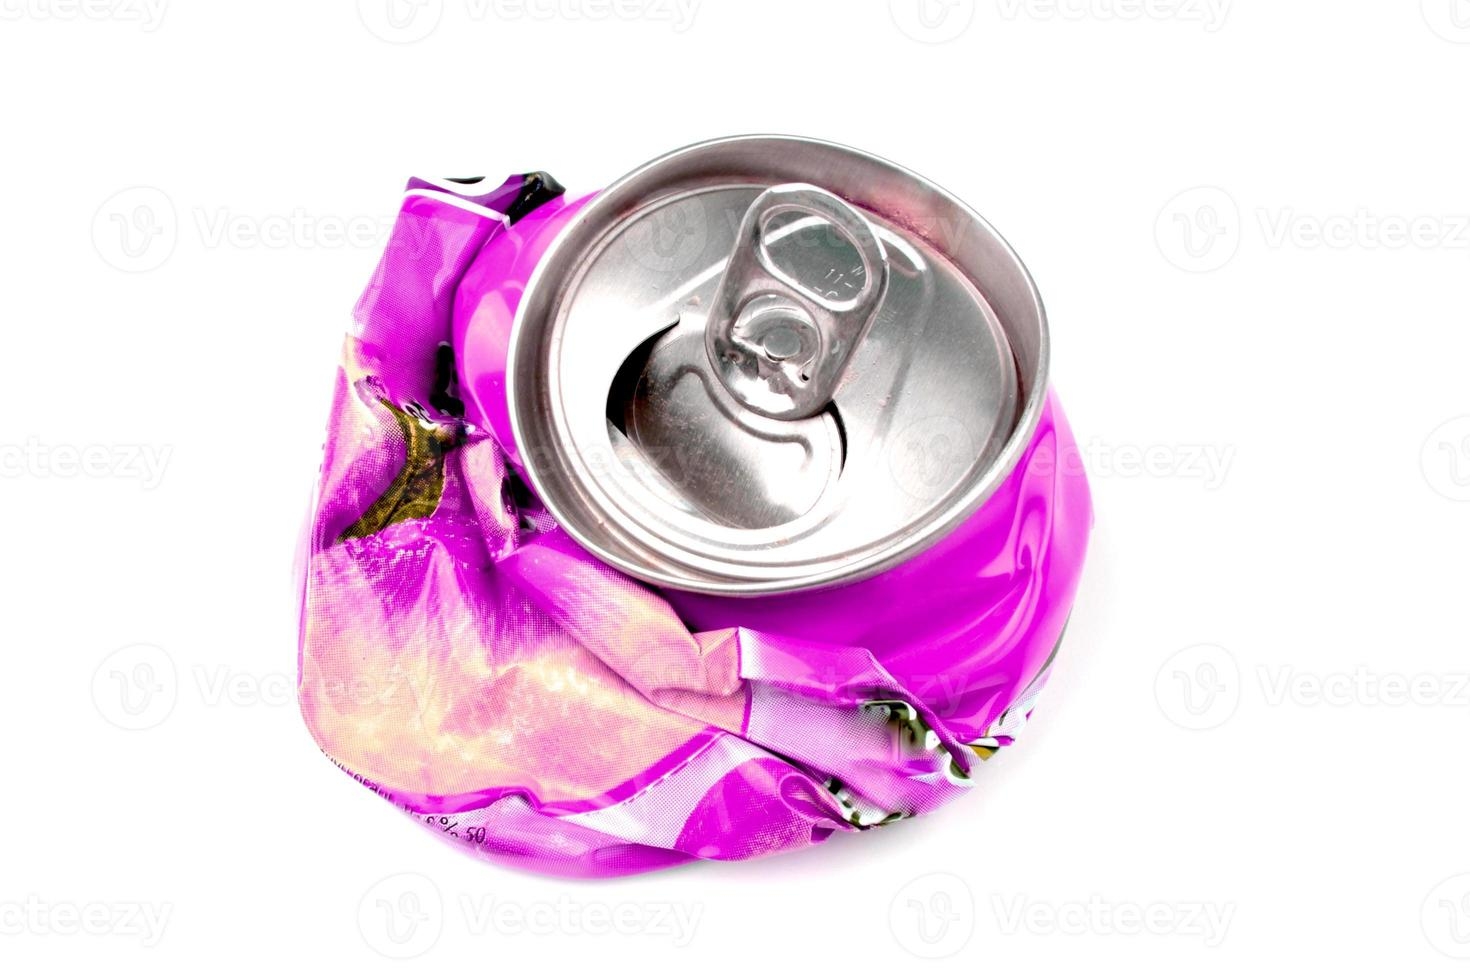 Crushed drink can photo